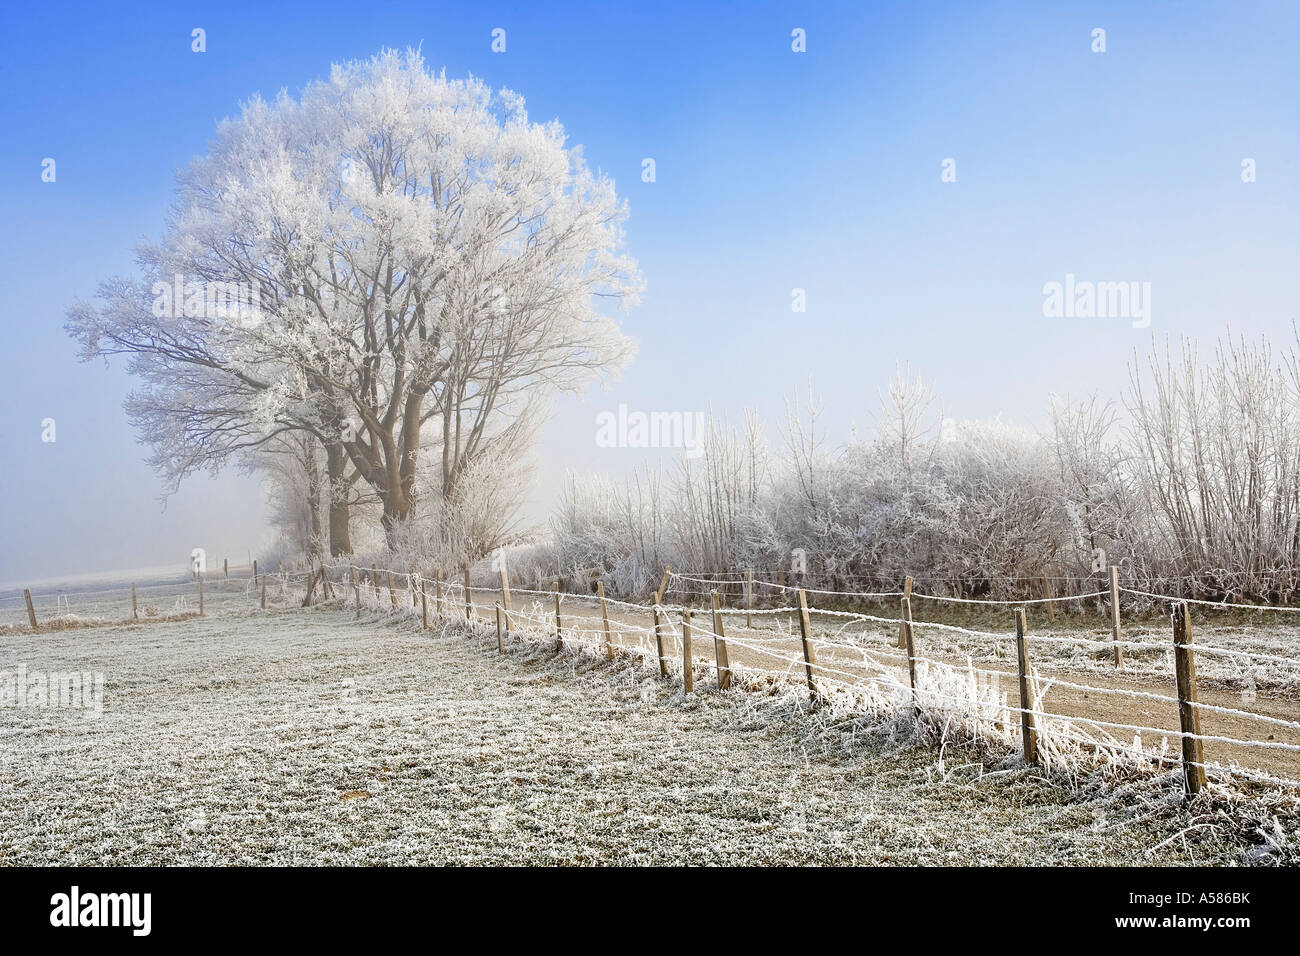 Field path in a winterly landscape with hoarfrost and fog, Sense district, Fribourg, Switzerland Stock Photo